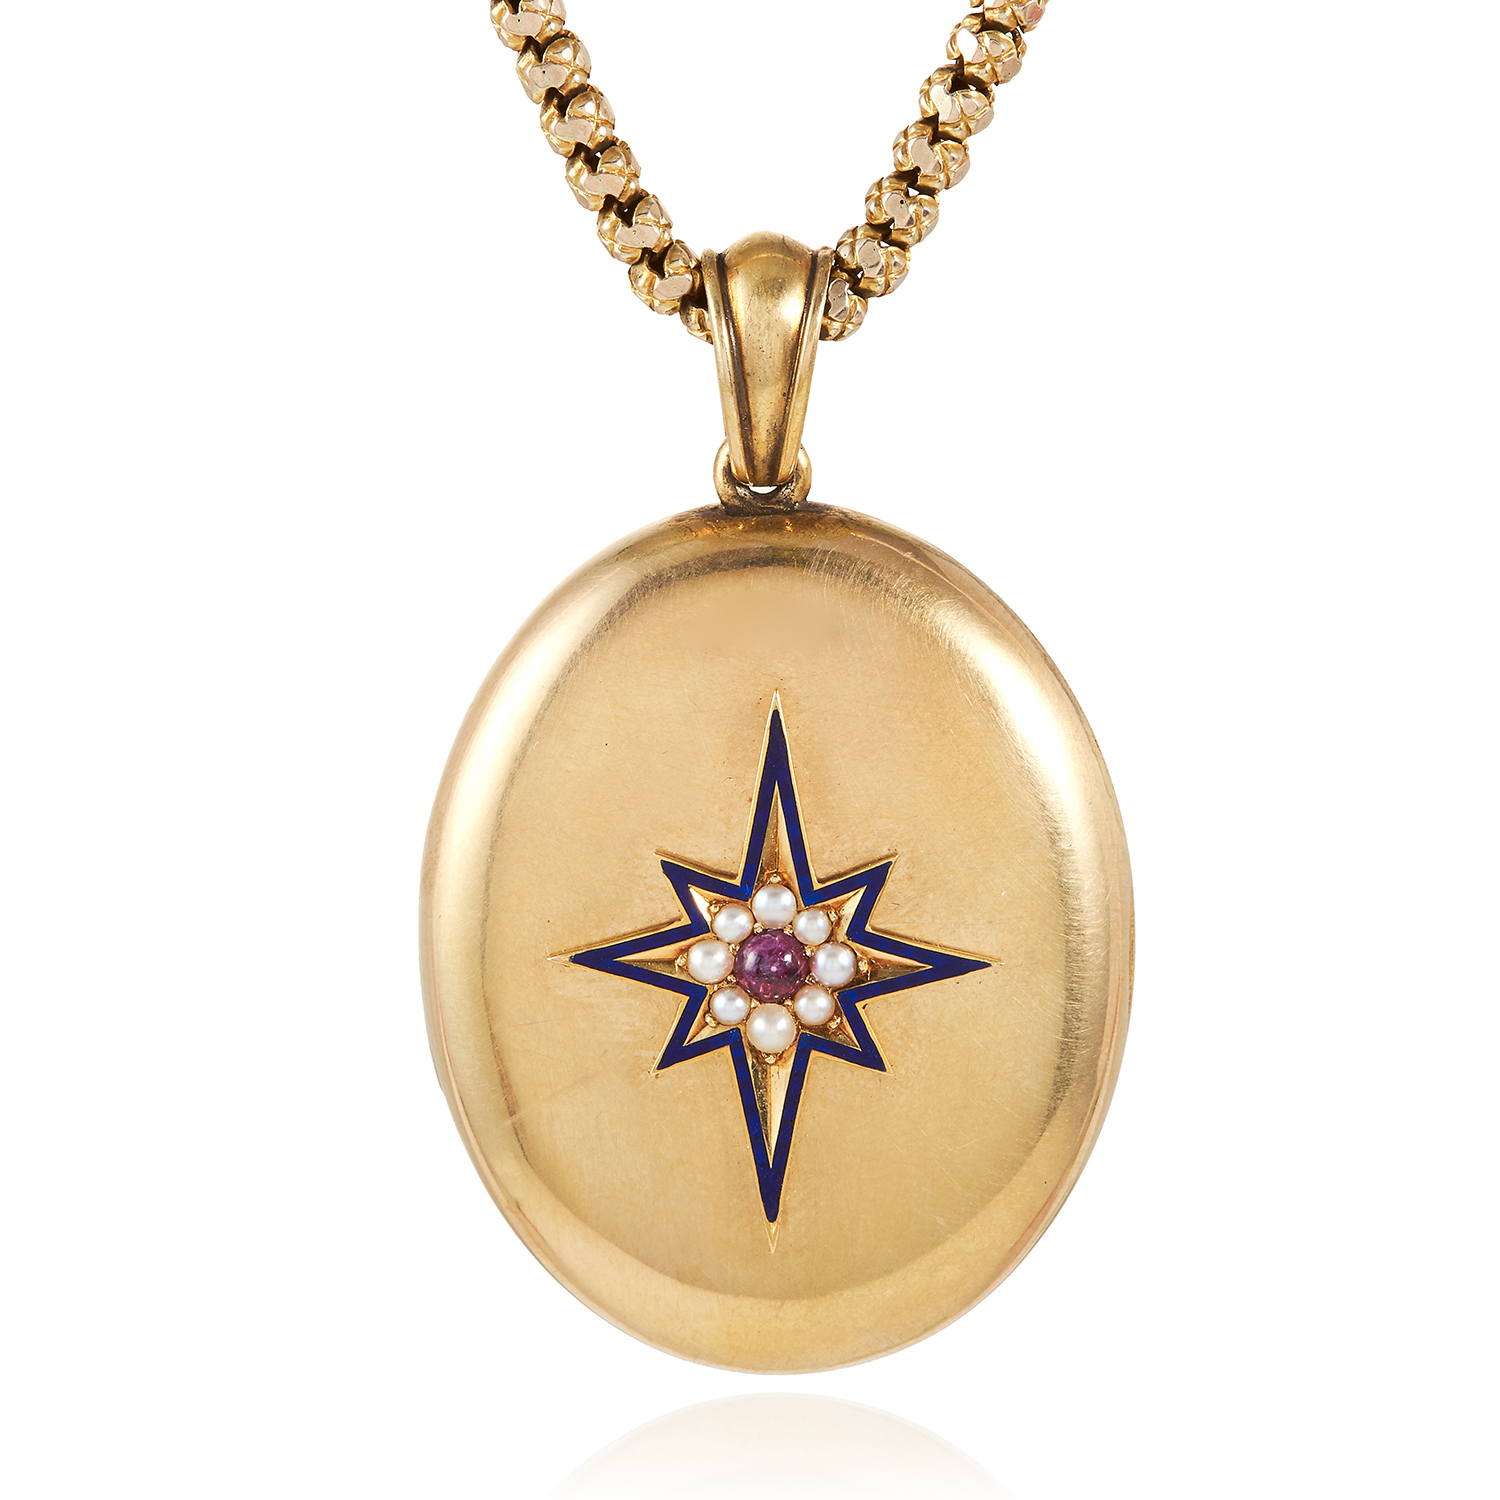 Los 1 - AN ANTIQUE GARNET, PEARL AND ENAMEL LOCKET in high carat yellow gold, set with a cabochon garnet,